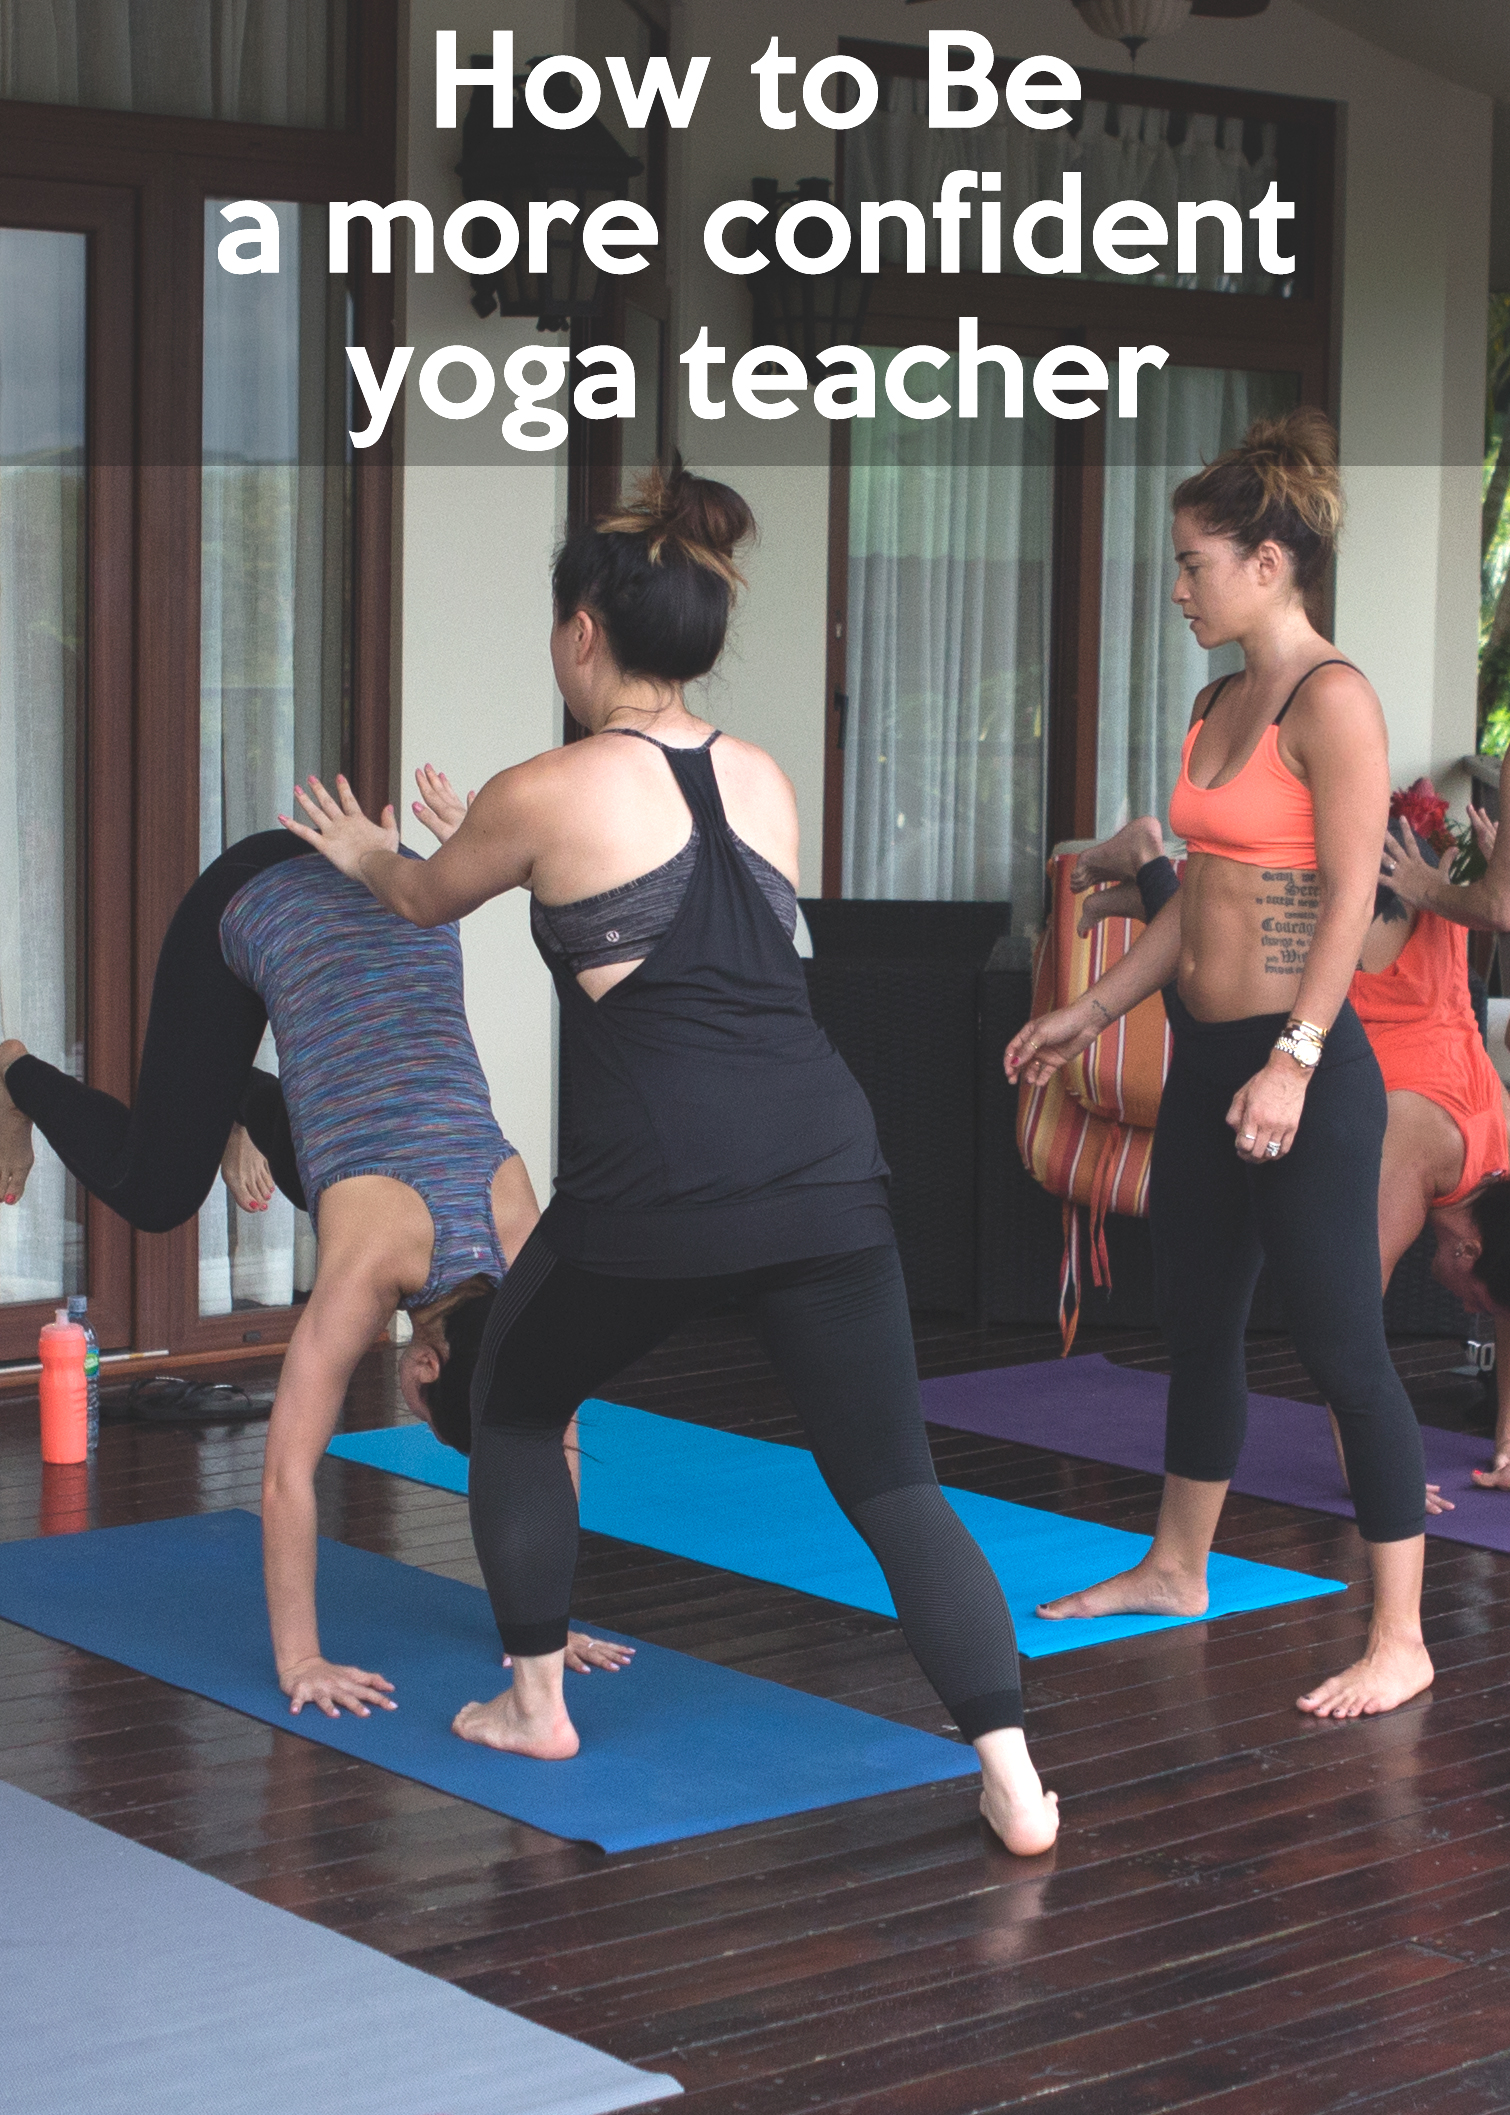 Pin now, read later - how to be a more confident yoga teacher  Wearing:  lululemon pants ,  onzie bra .